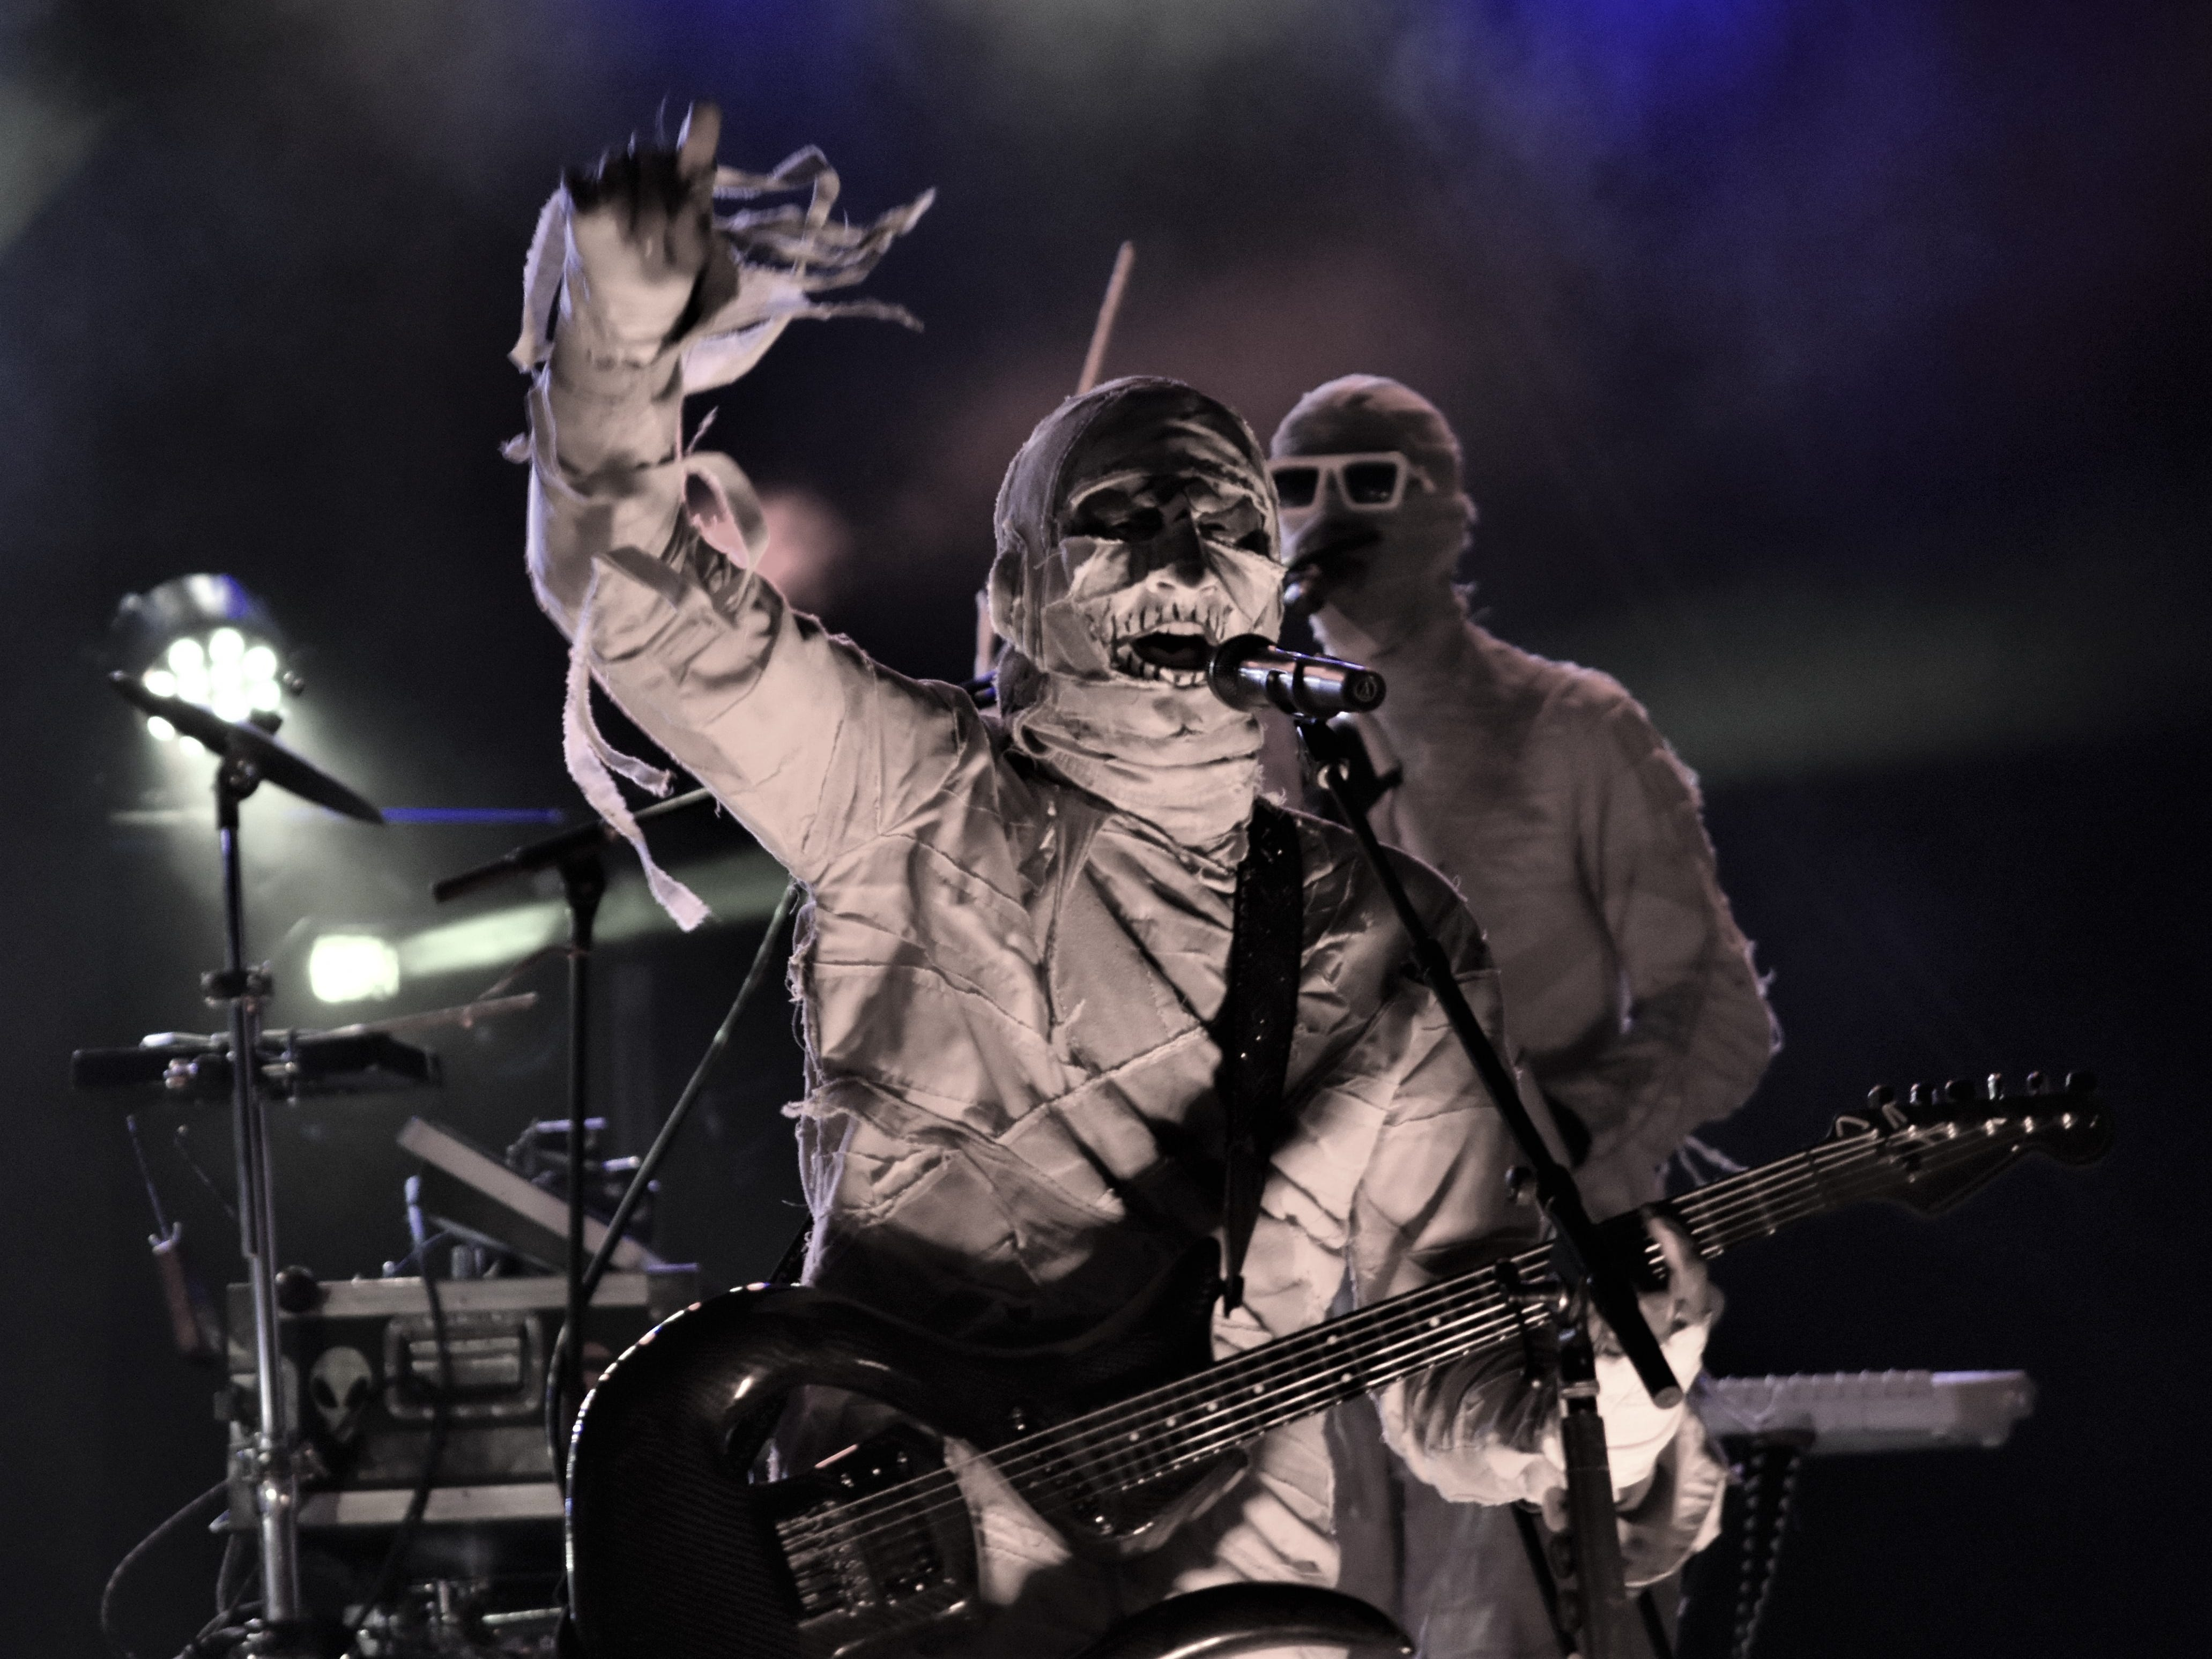 Mummy-themed funk act Here Come the Mummies performed Saturday, Feb. 16, at the 10th annual Funk Fest in Punta Gorda.